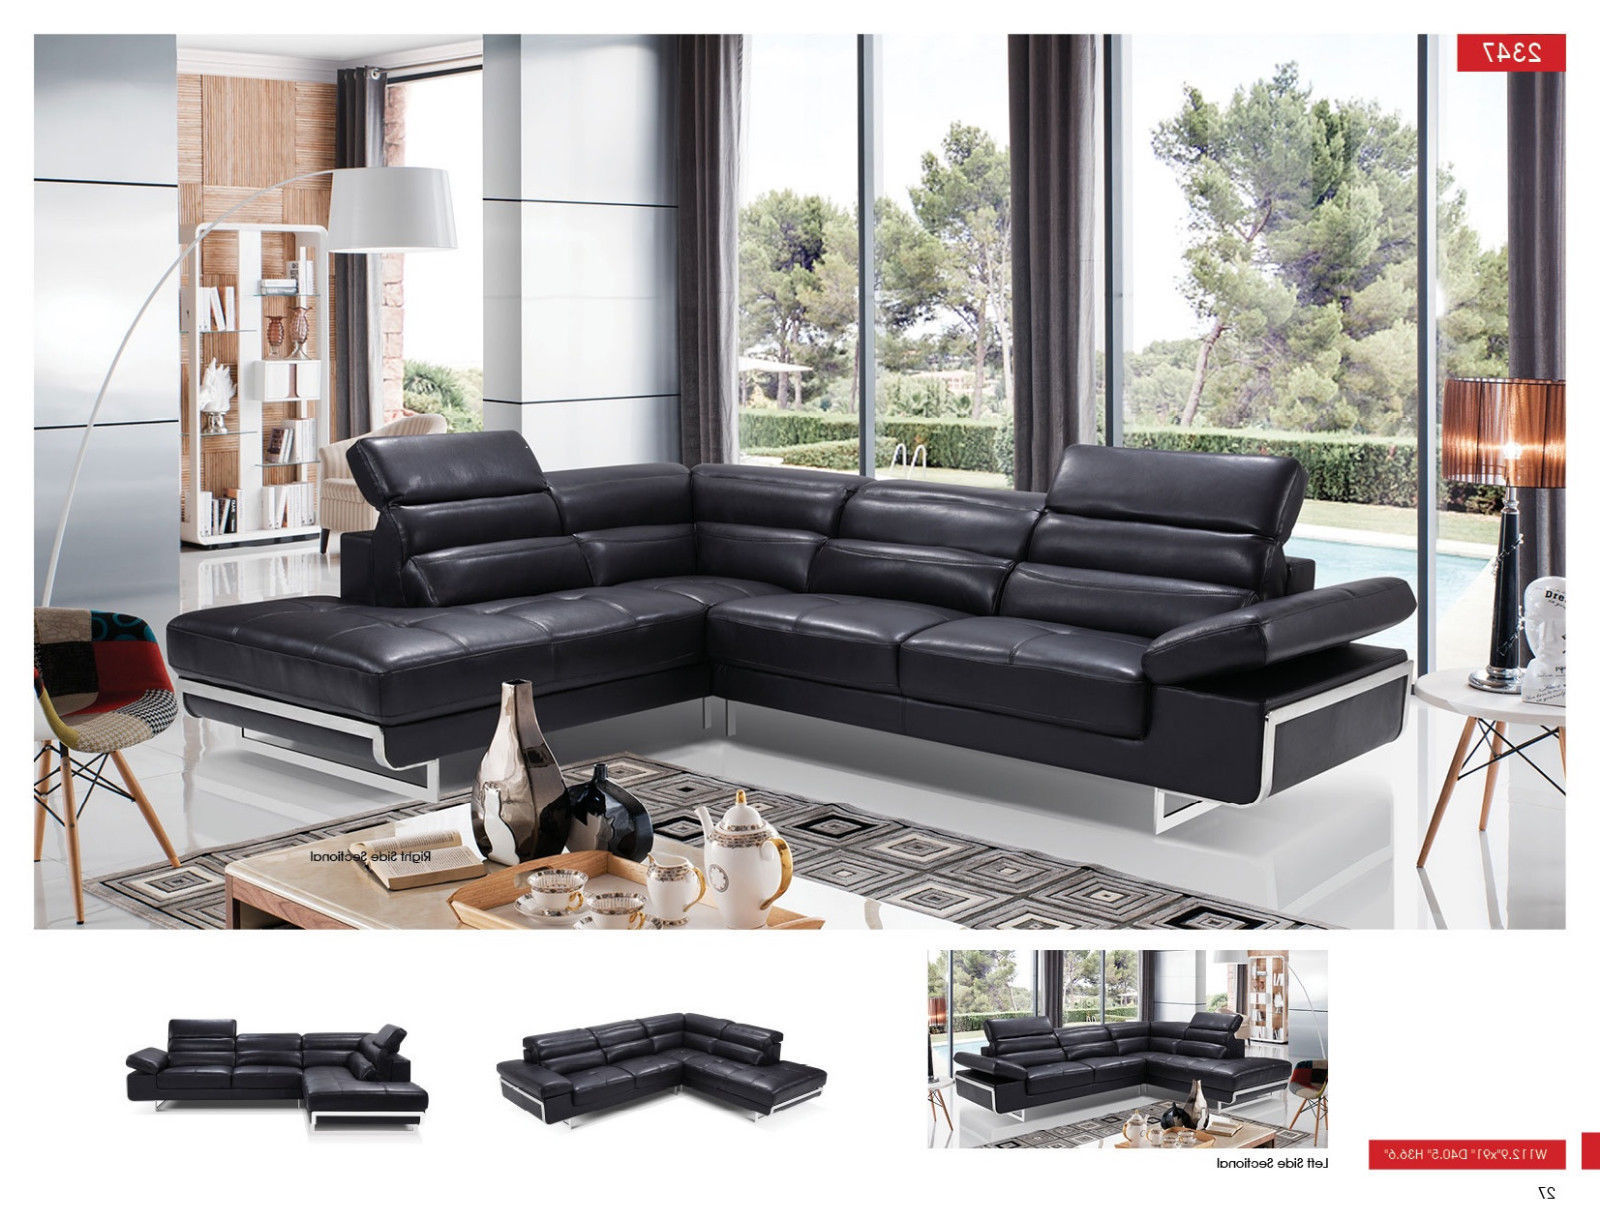 ESF 2347 Leather Sectional Sofa Black Chic Contemporary Style Left Hand Facing